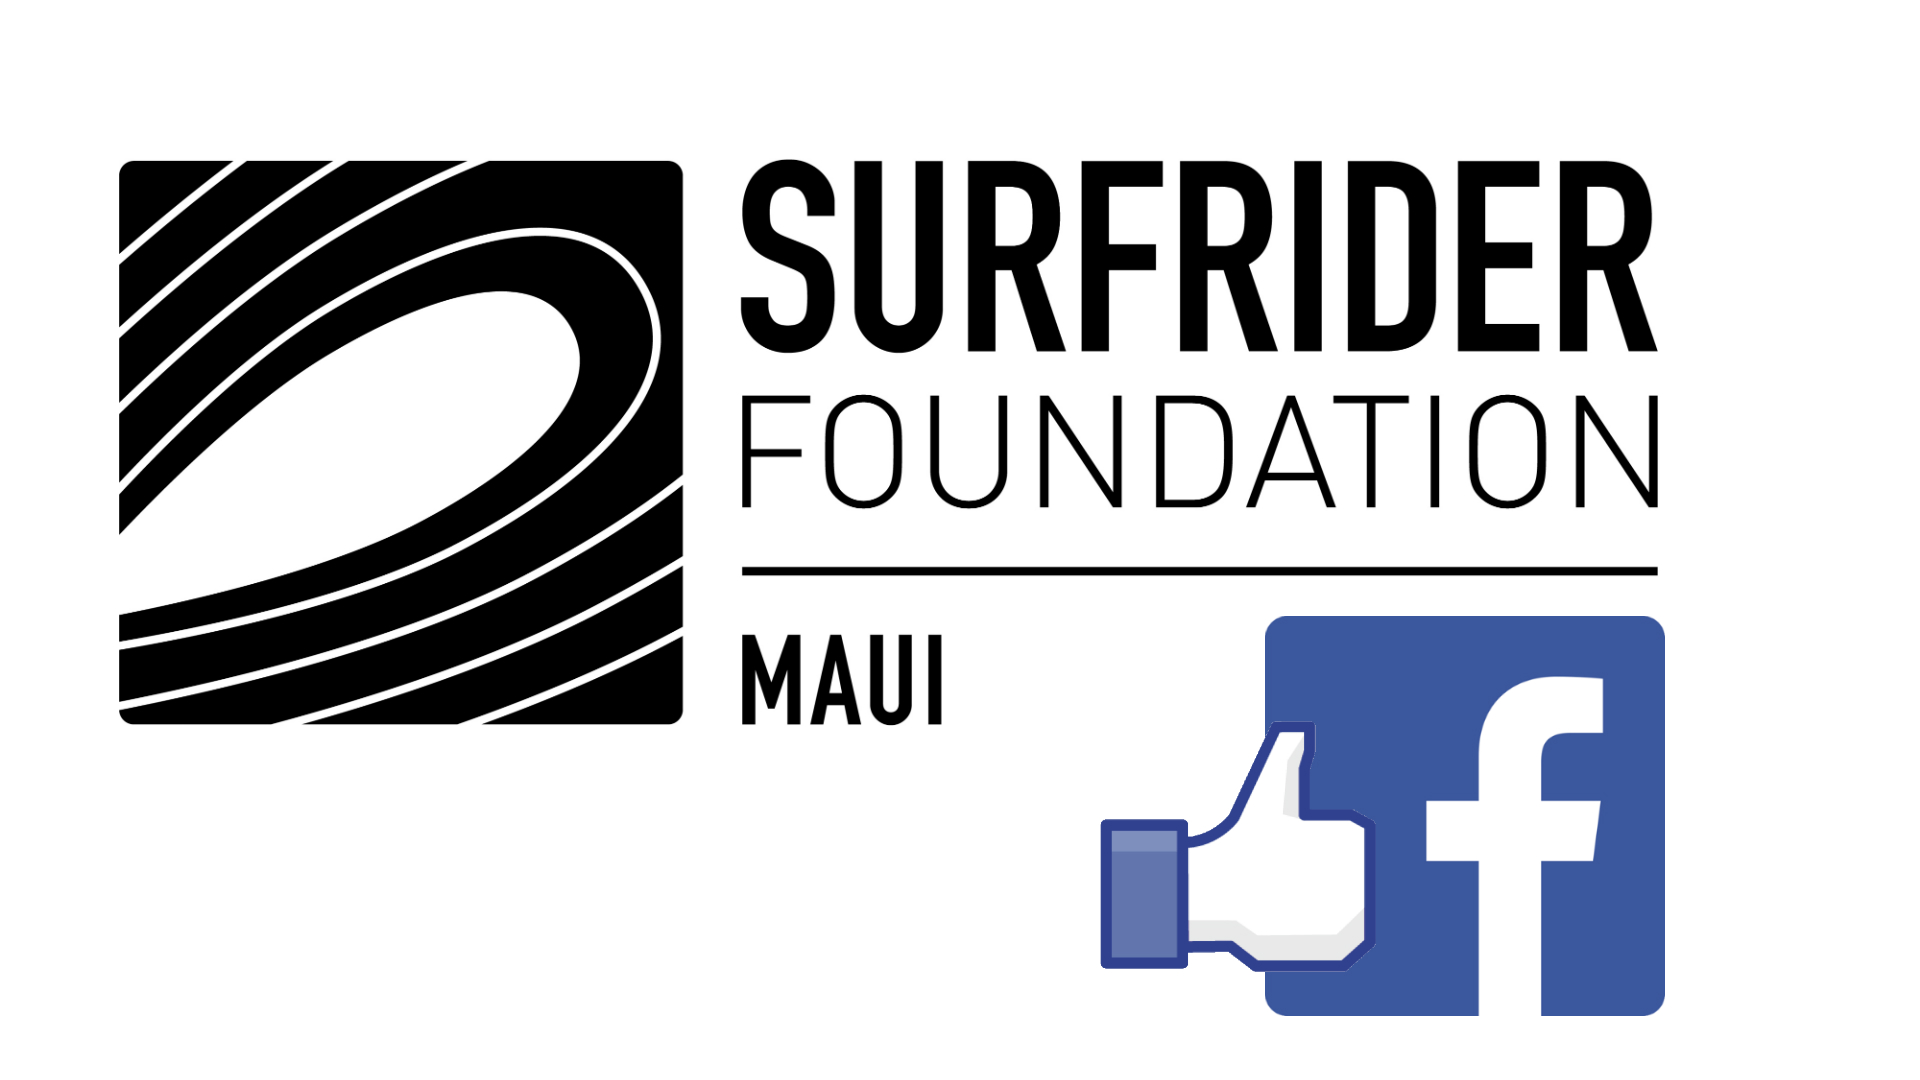 Maui Chapter - Surfrider Foundation